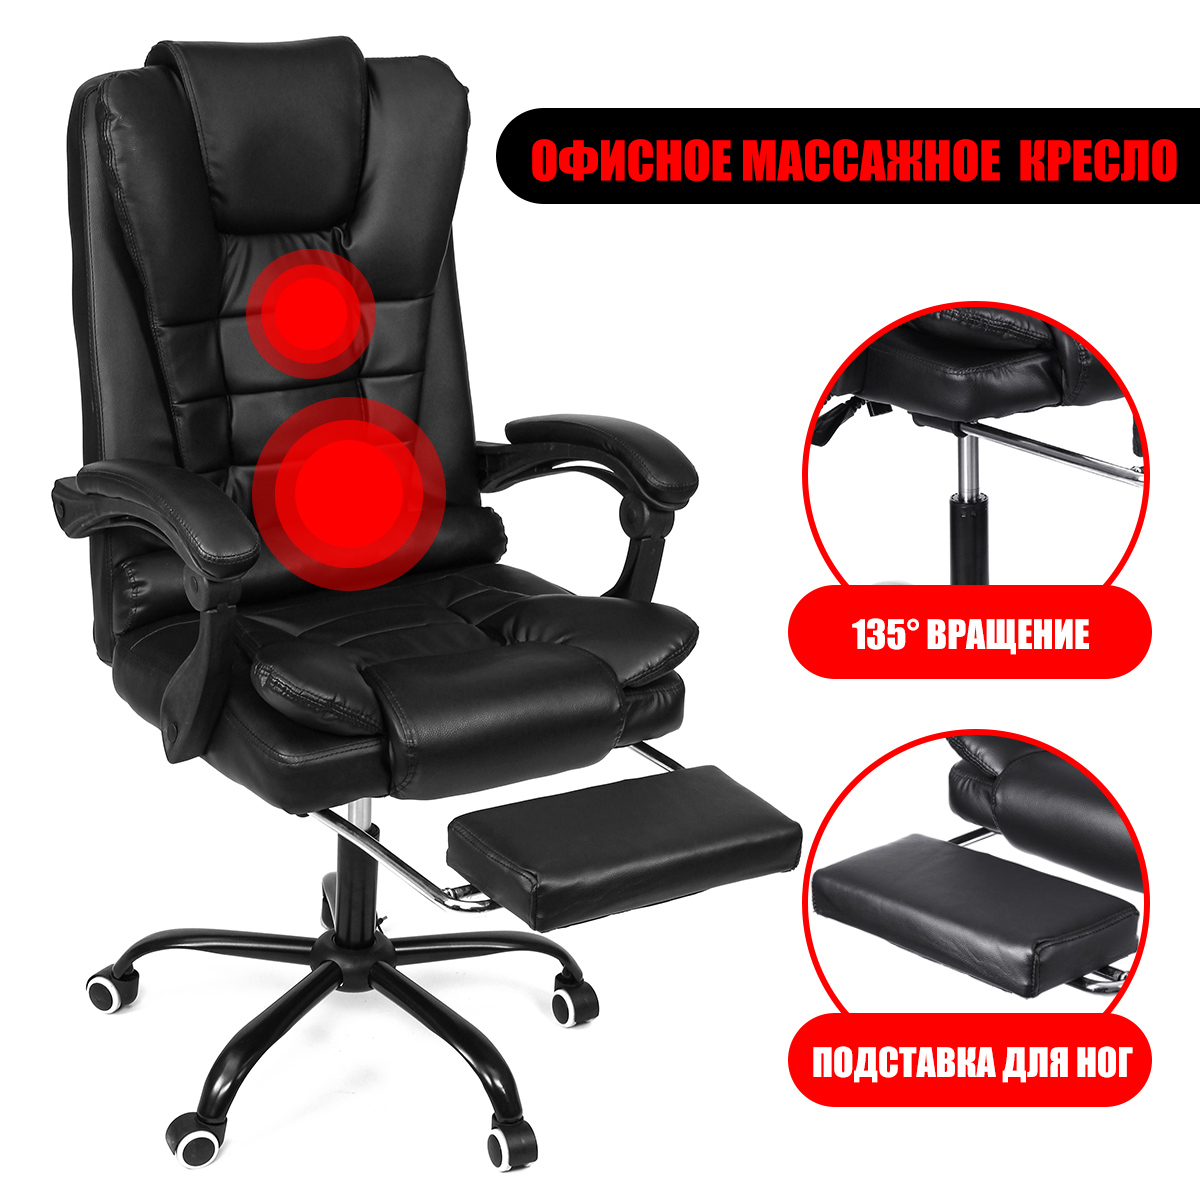 Home Office Computer Desk Boss Massage Chair With Footrest Armrest Home Lifting Adjustable Ergonomic Reclining Gaming Chair